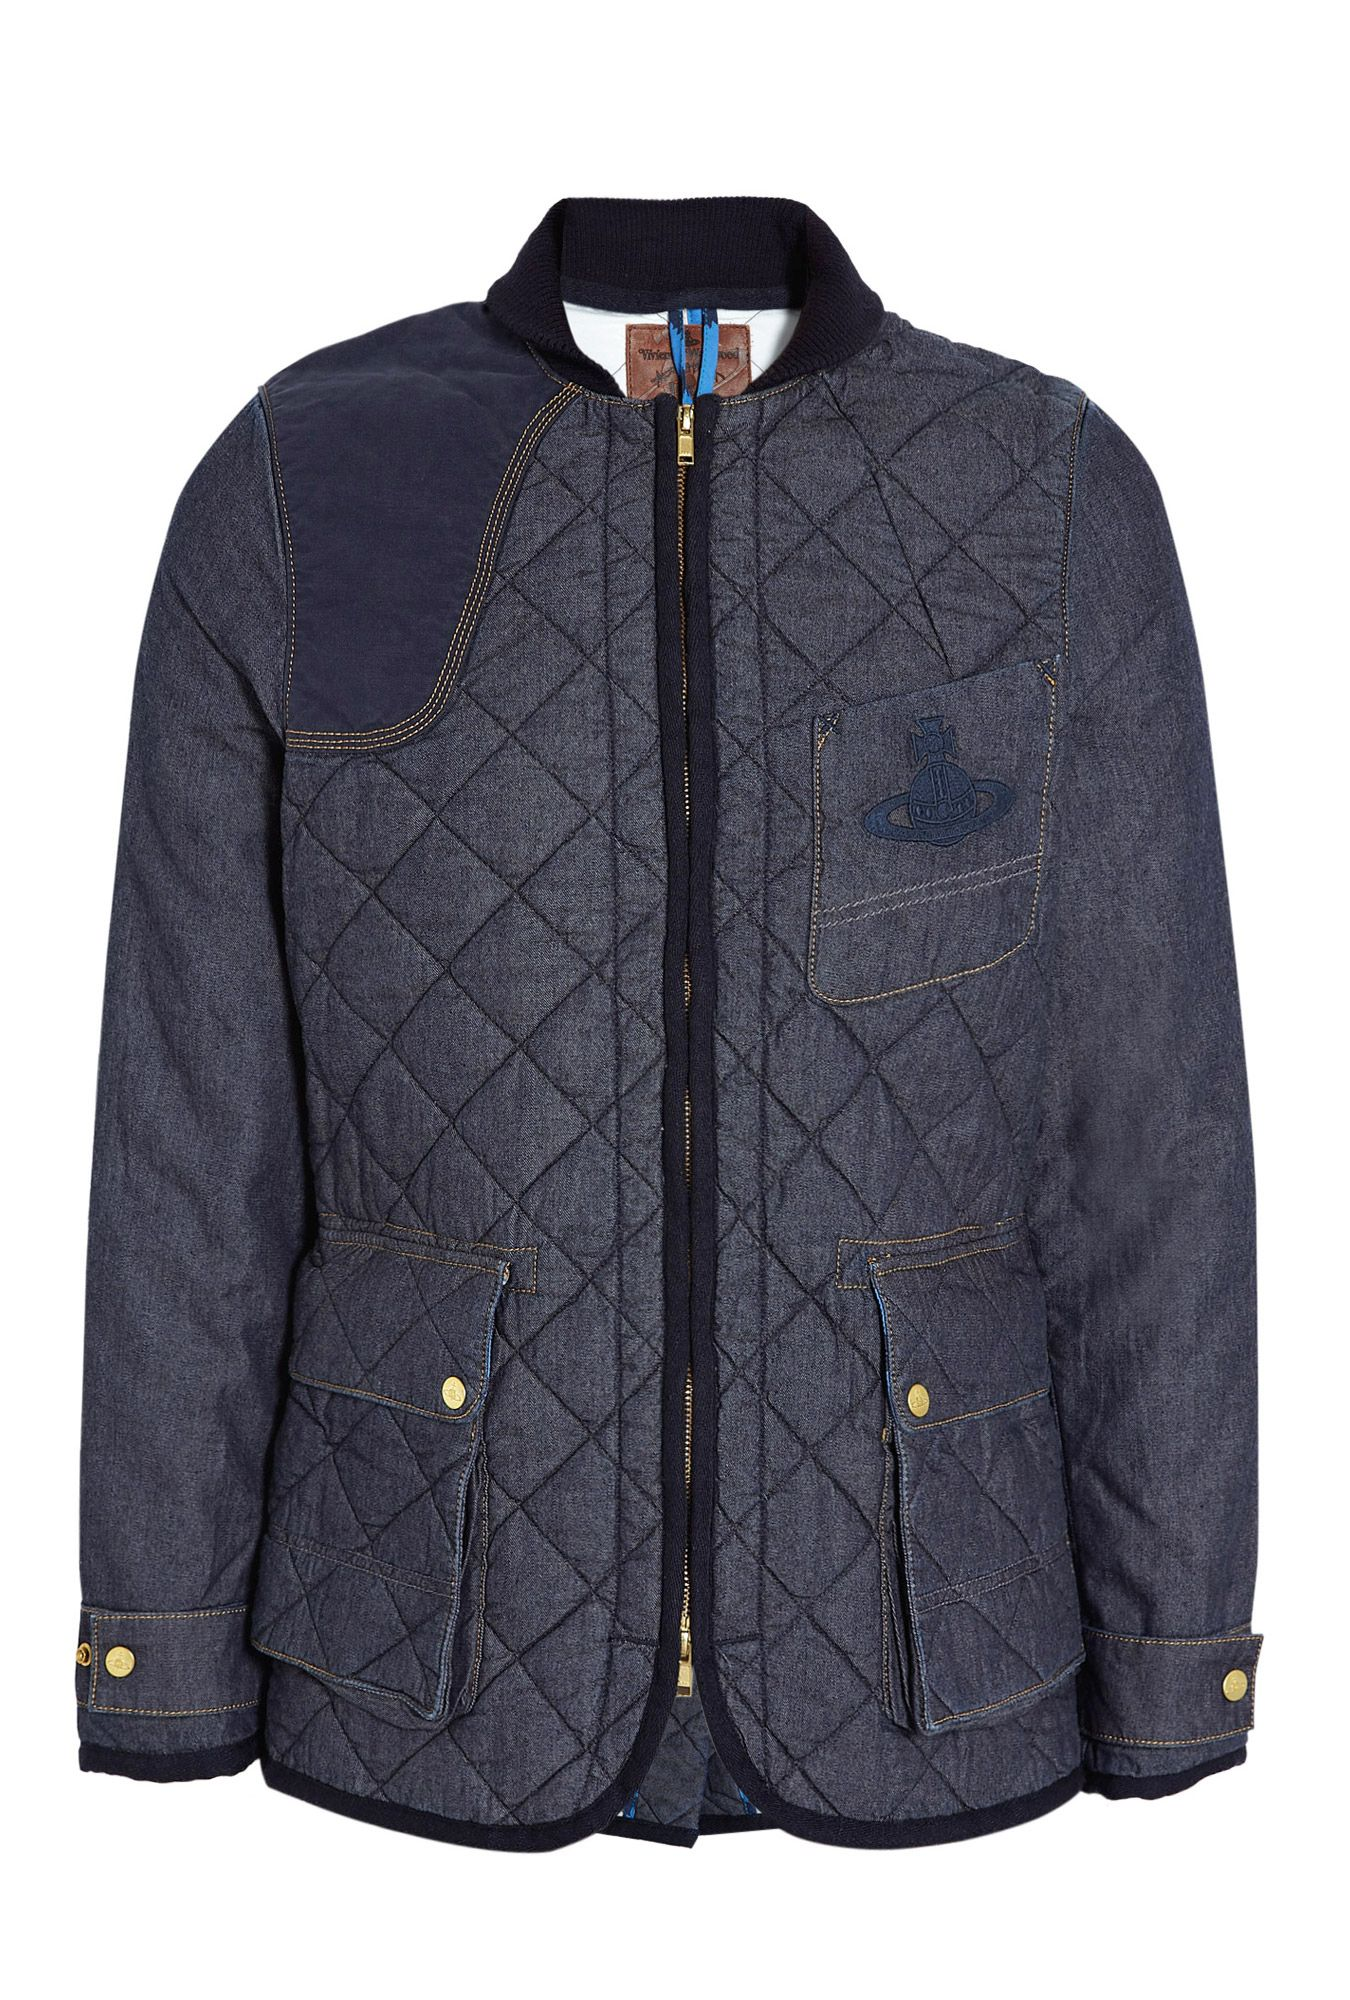 a5fdeb41a Washed Quilted Denim Hunting Jacket, Vivienne Westwood Anglomania by ...